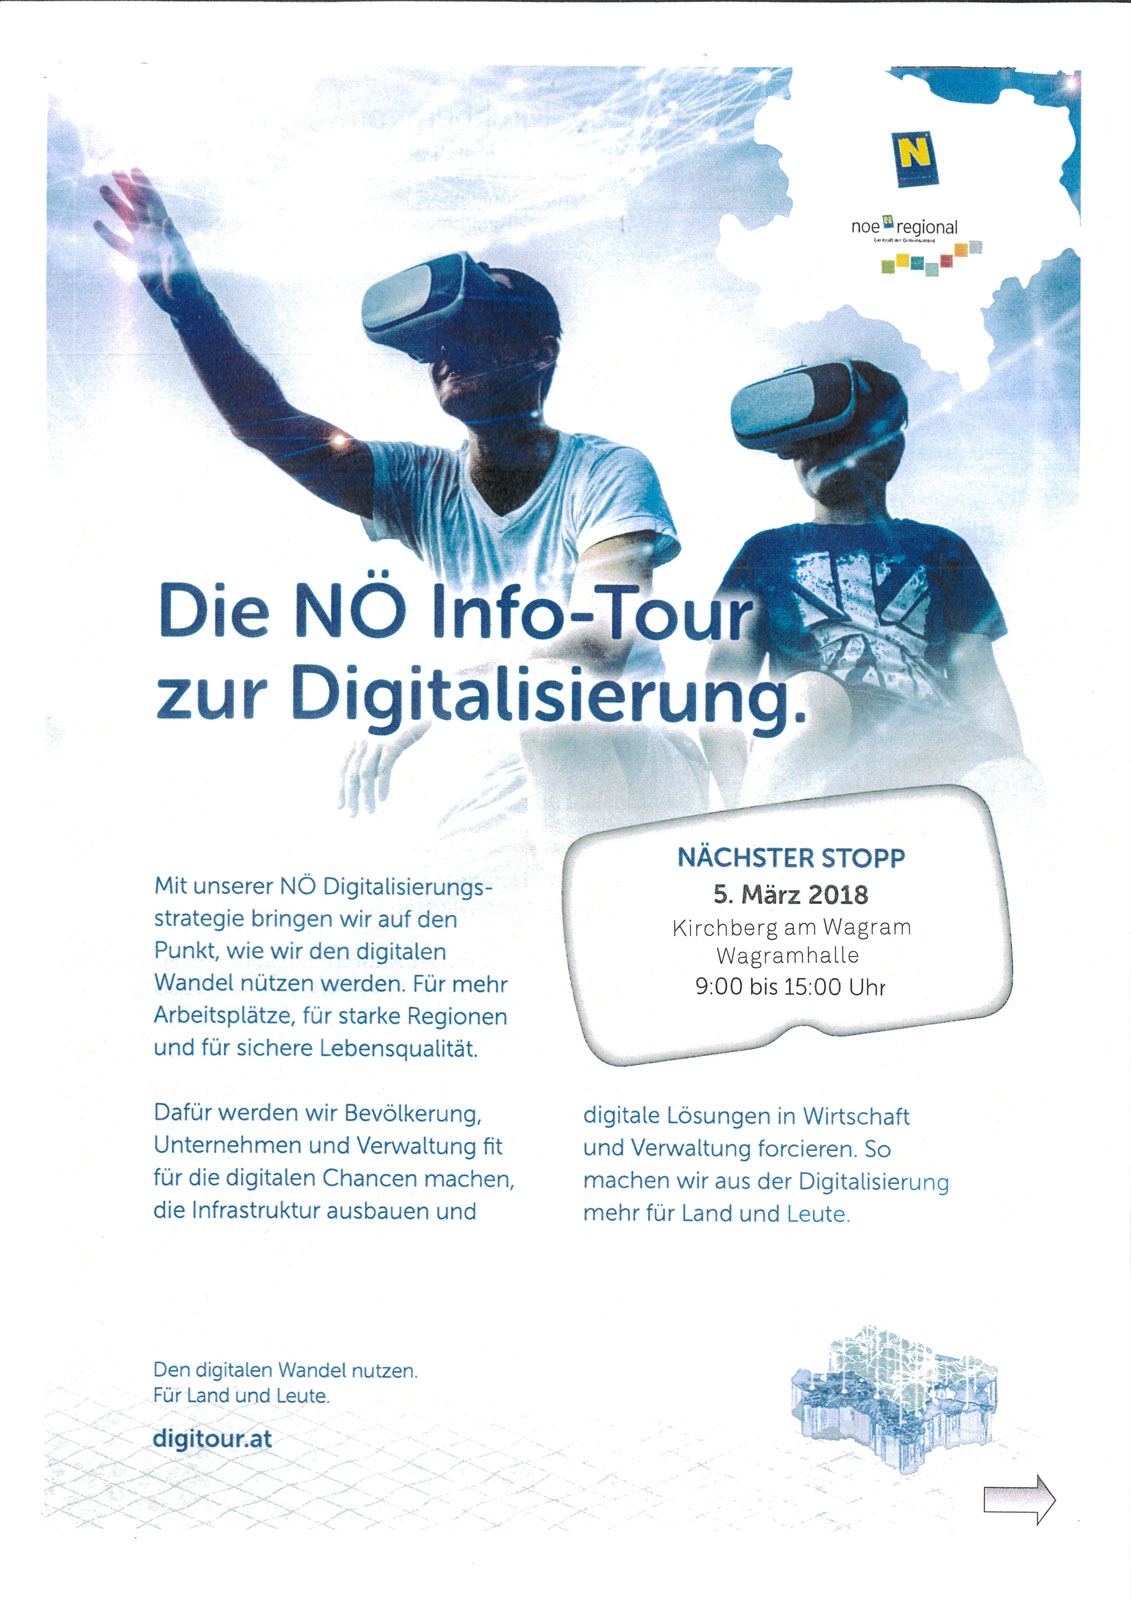 Digi Bus in Kirchberg am Wagram